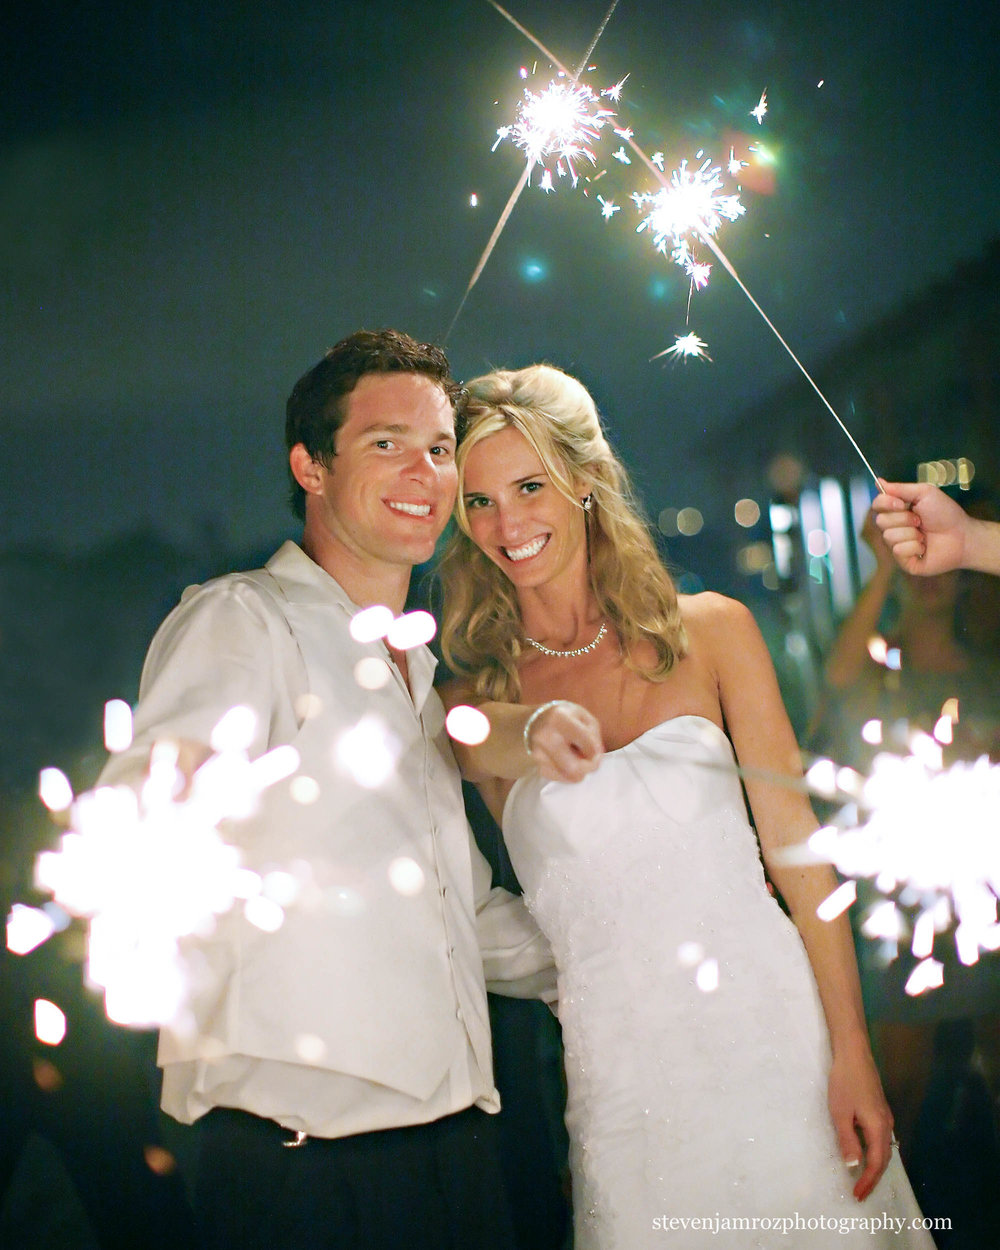 sparklers-exit-raleigh-nc-wedding-steven-jamroz-photography-0473.jpg